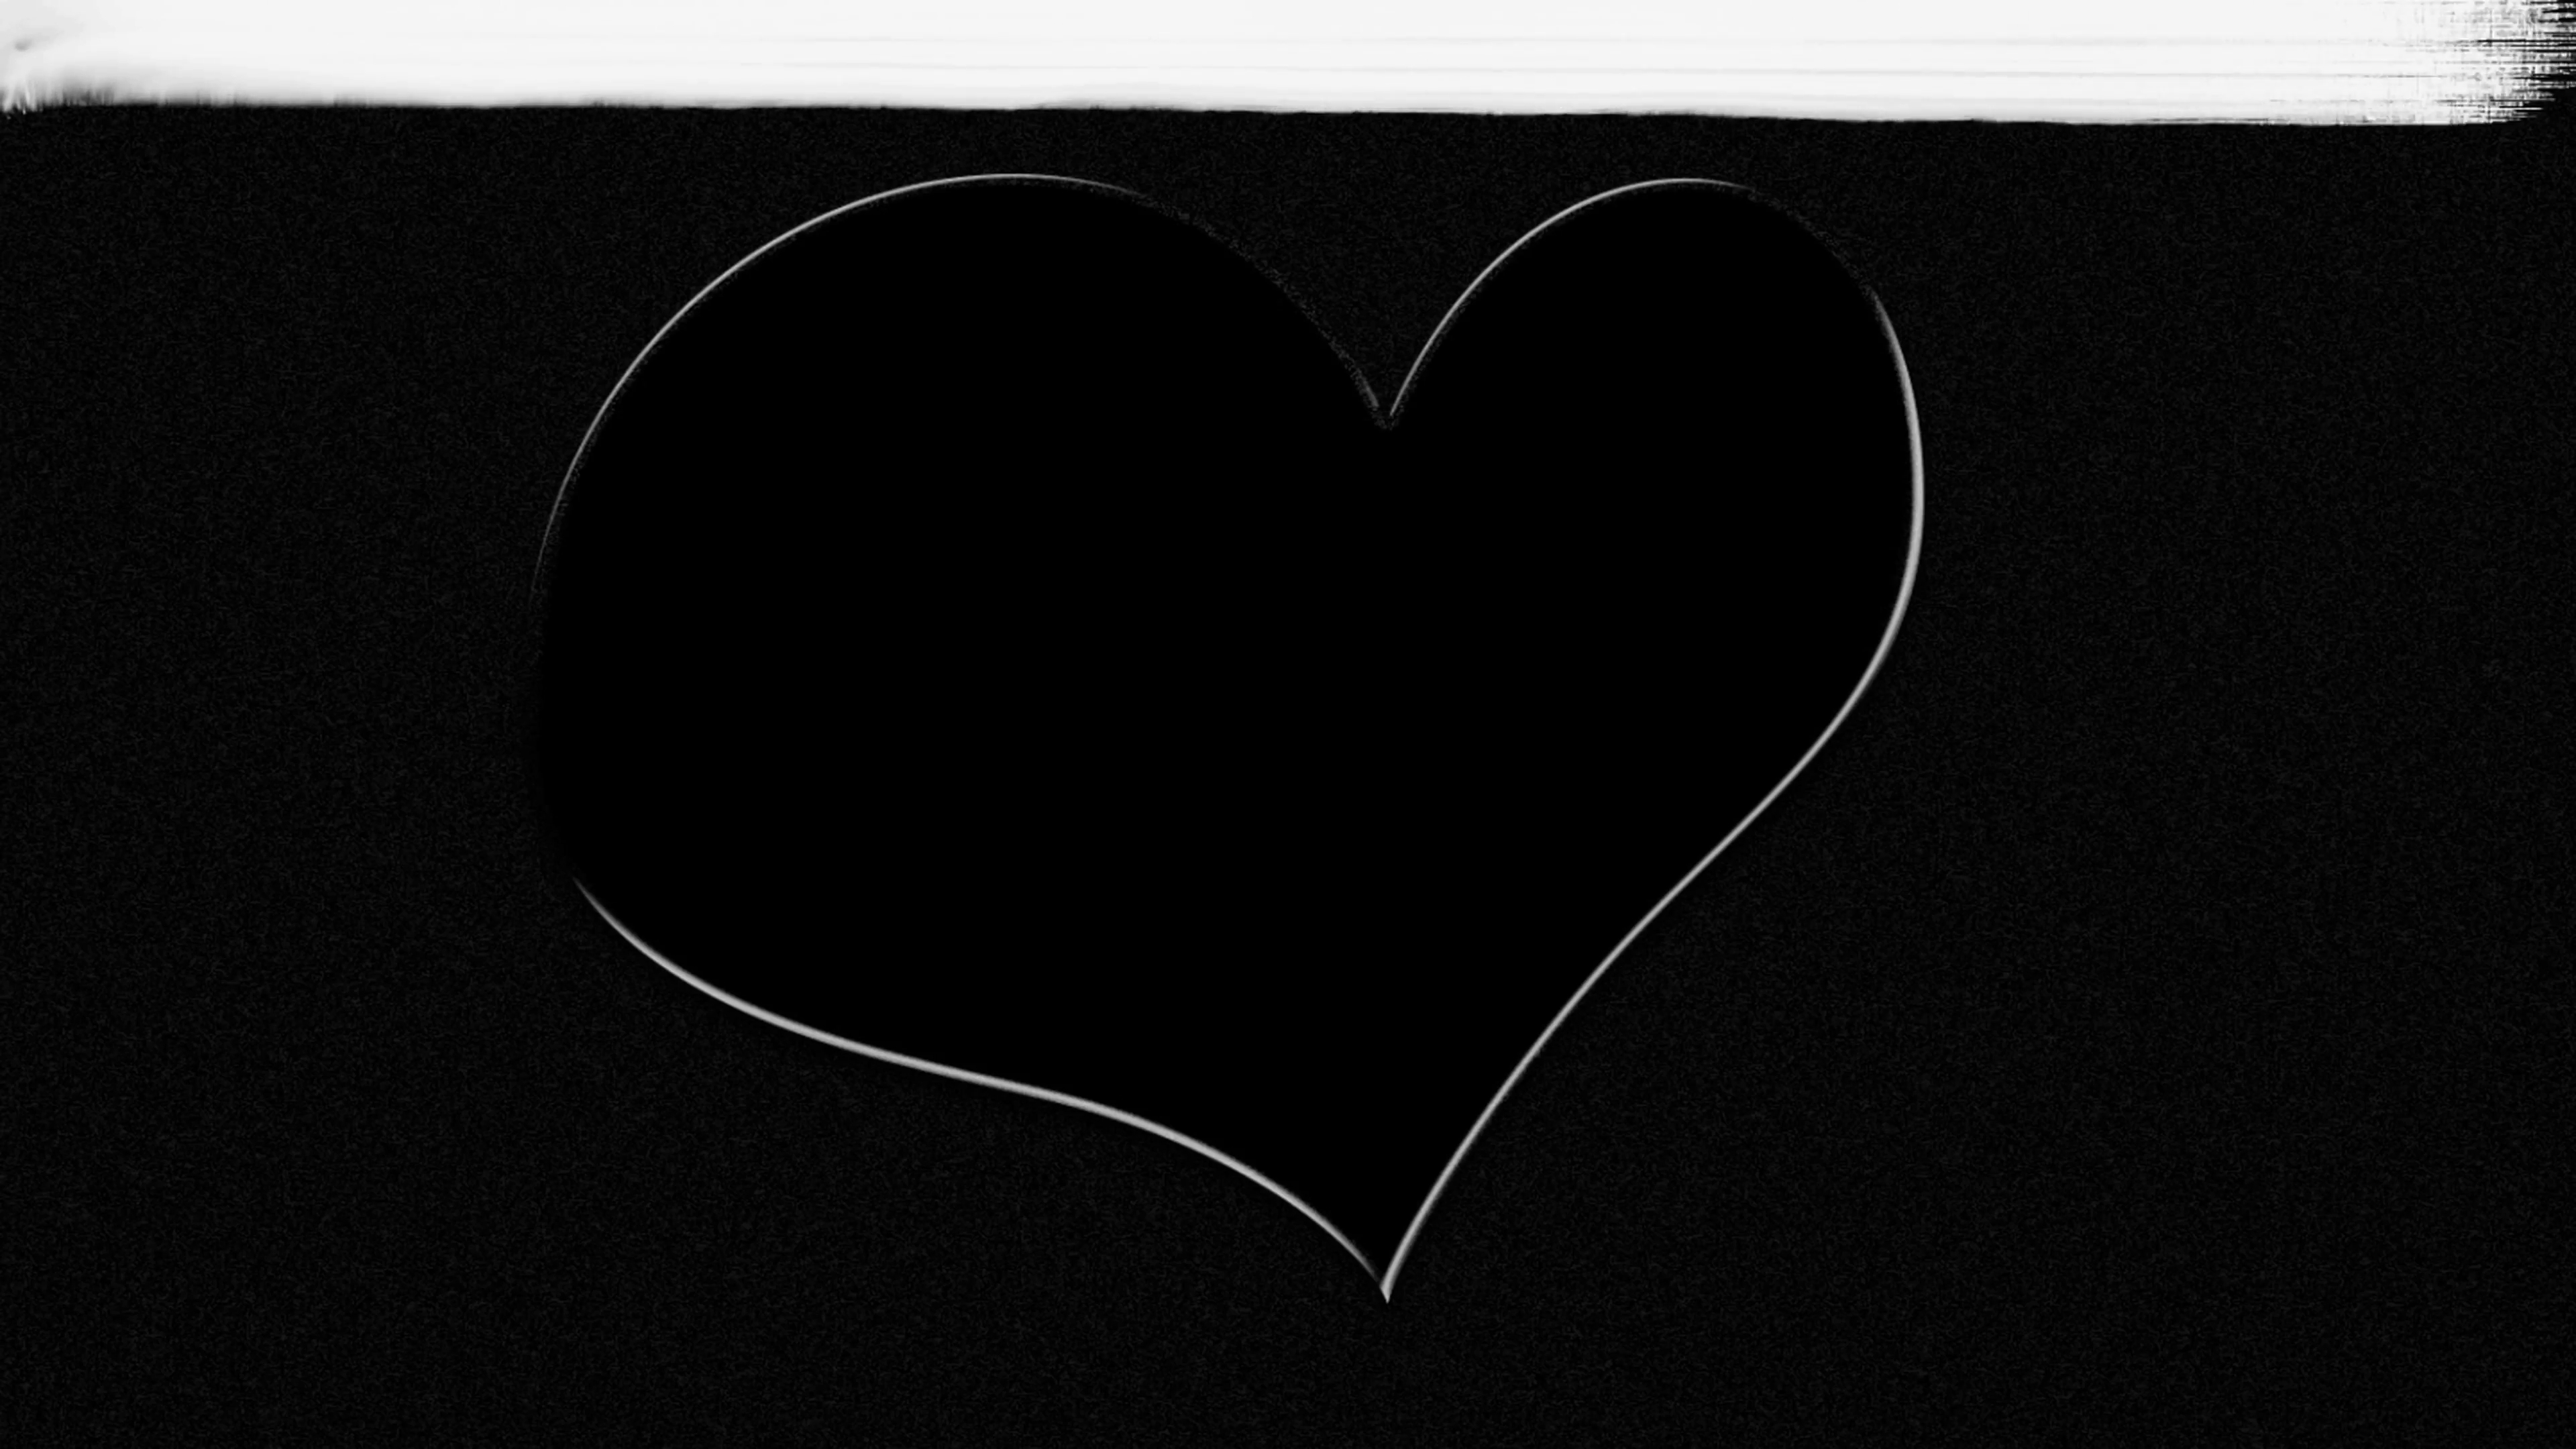 hand drawn white heart on black background painted over with white